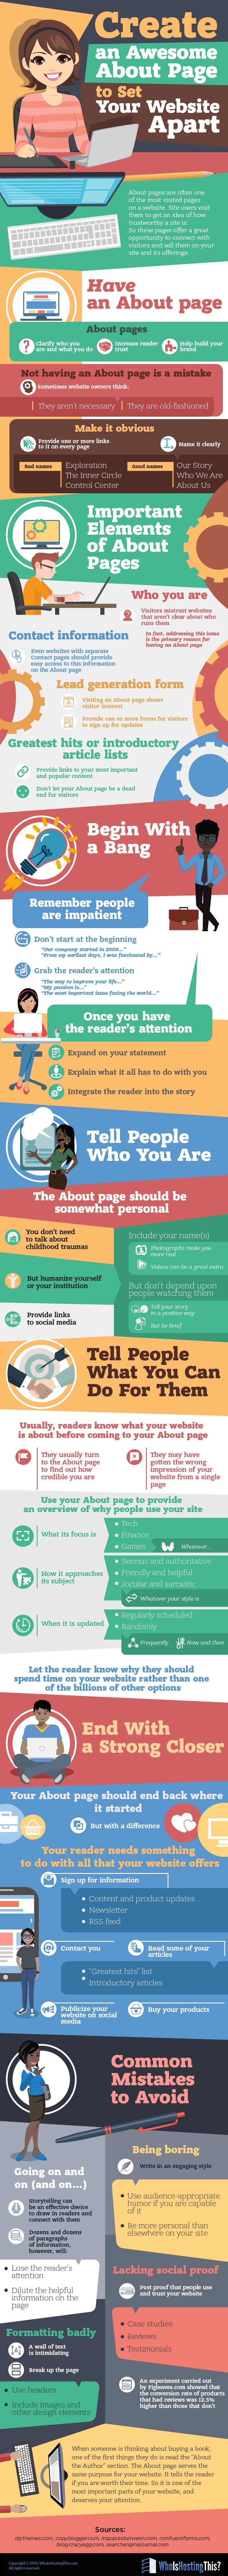 Create an Awesome About Page to Set Your Website Apart #Infographic